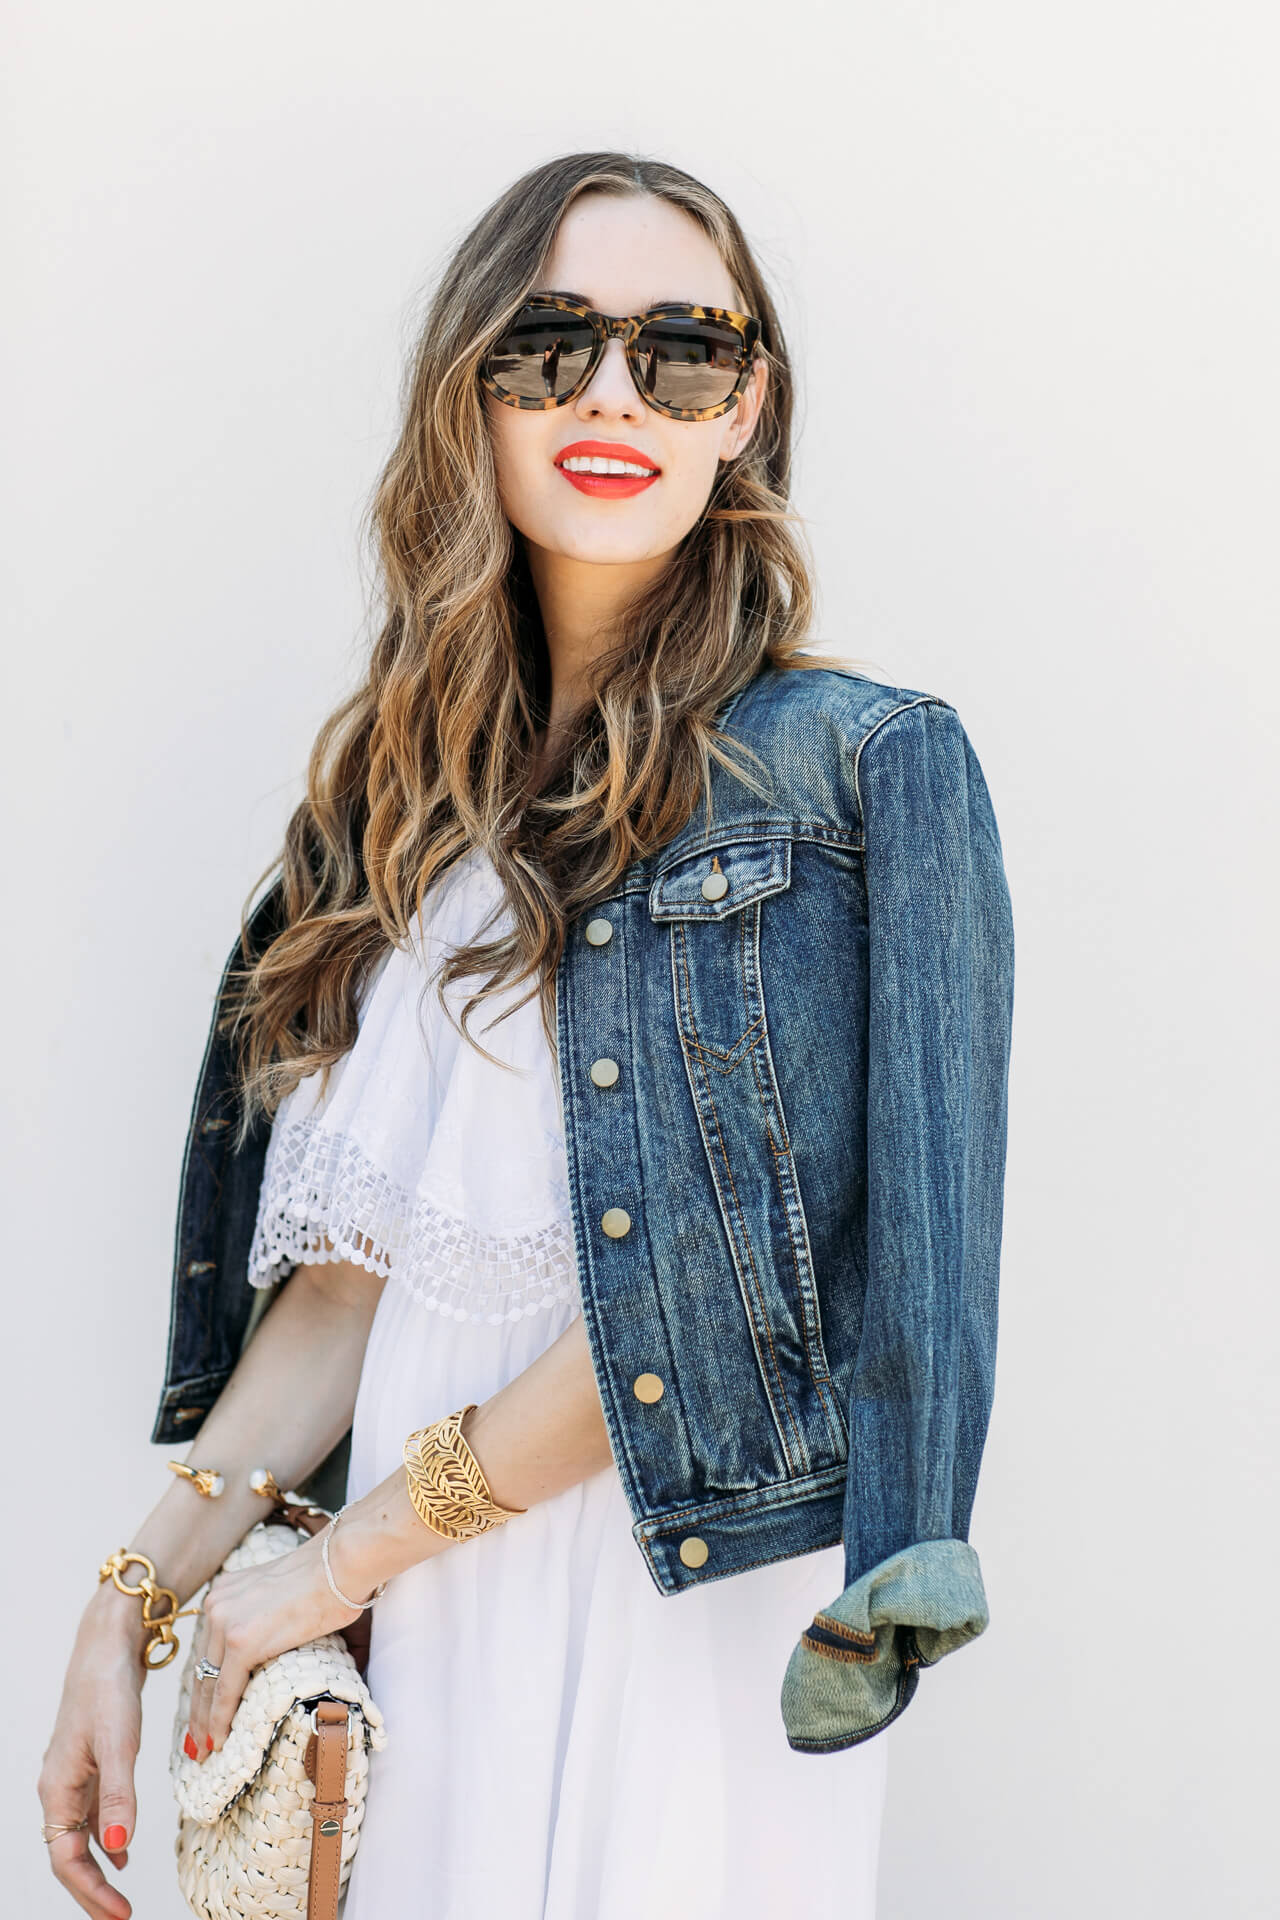 How to style a denim jacket for the fourth of July with pretty red lip pop